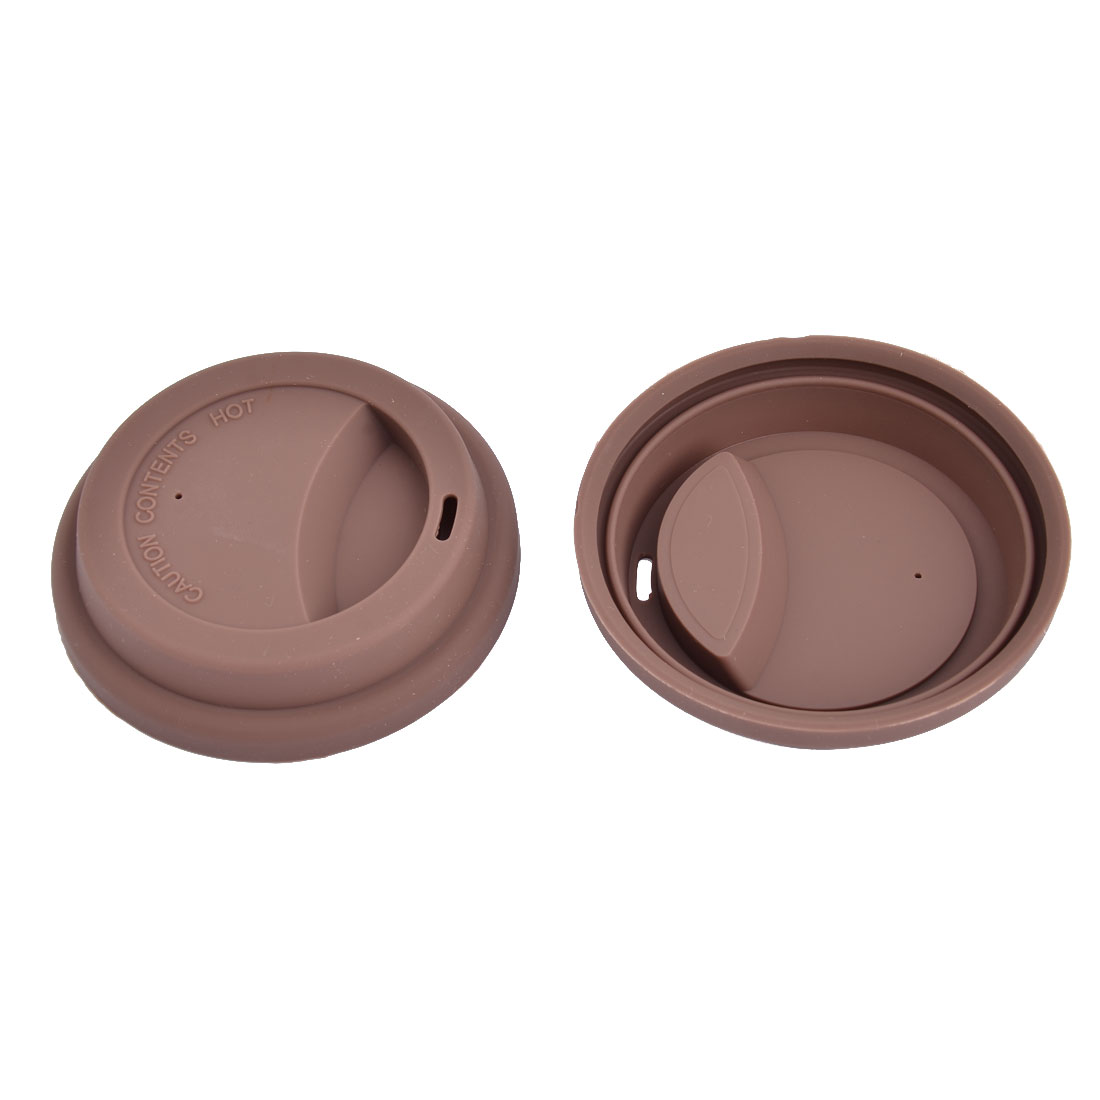 Family Cafe Silicone Round Water Tea Mug Cup Sealed Lid Cover Coffee Color 2pcs